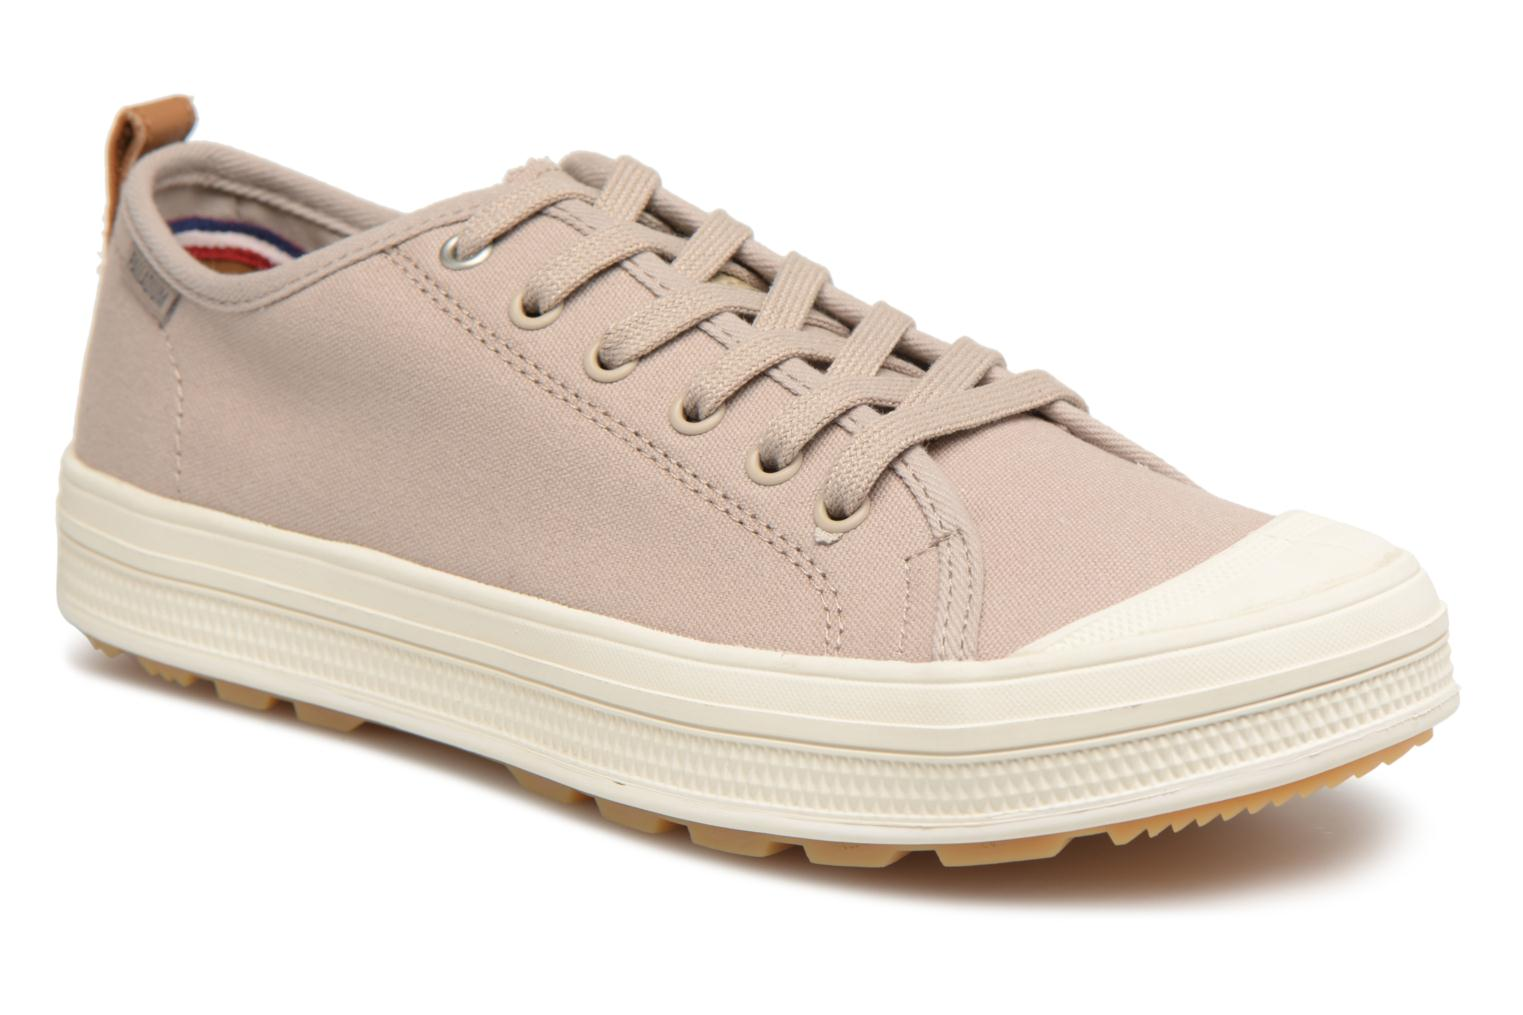 Palladium Sub Low Cvs M (Beige) - Baskets chez Sarenza (323528)